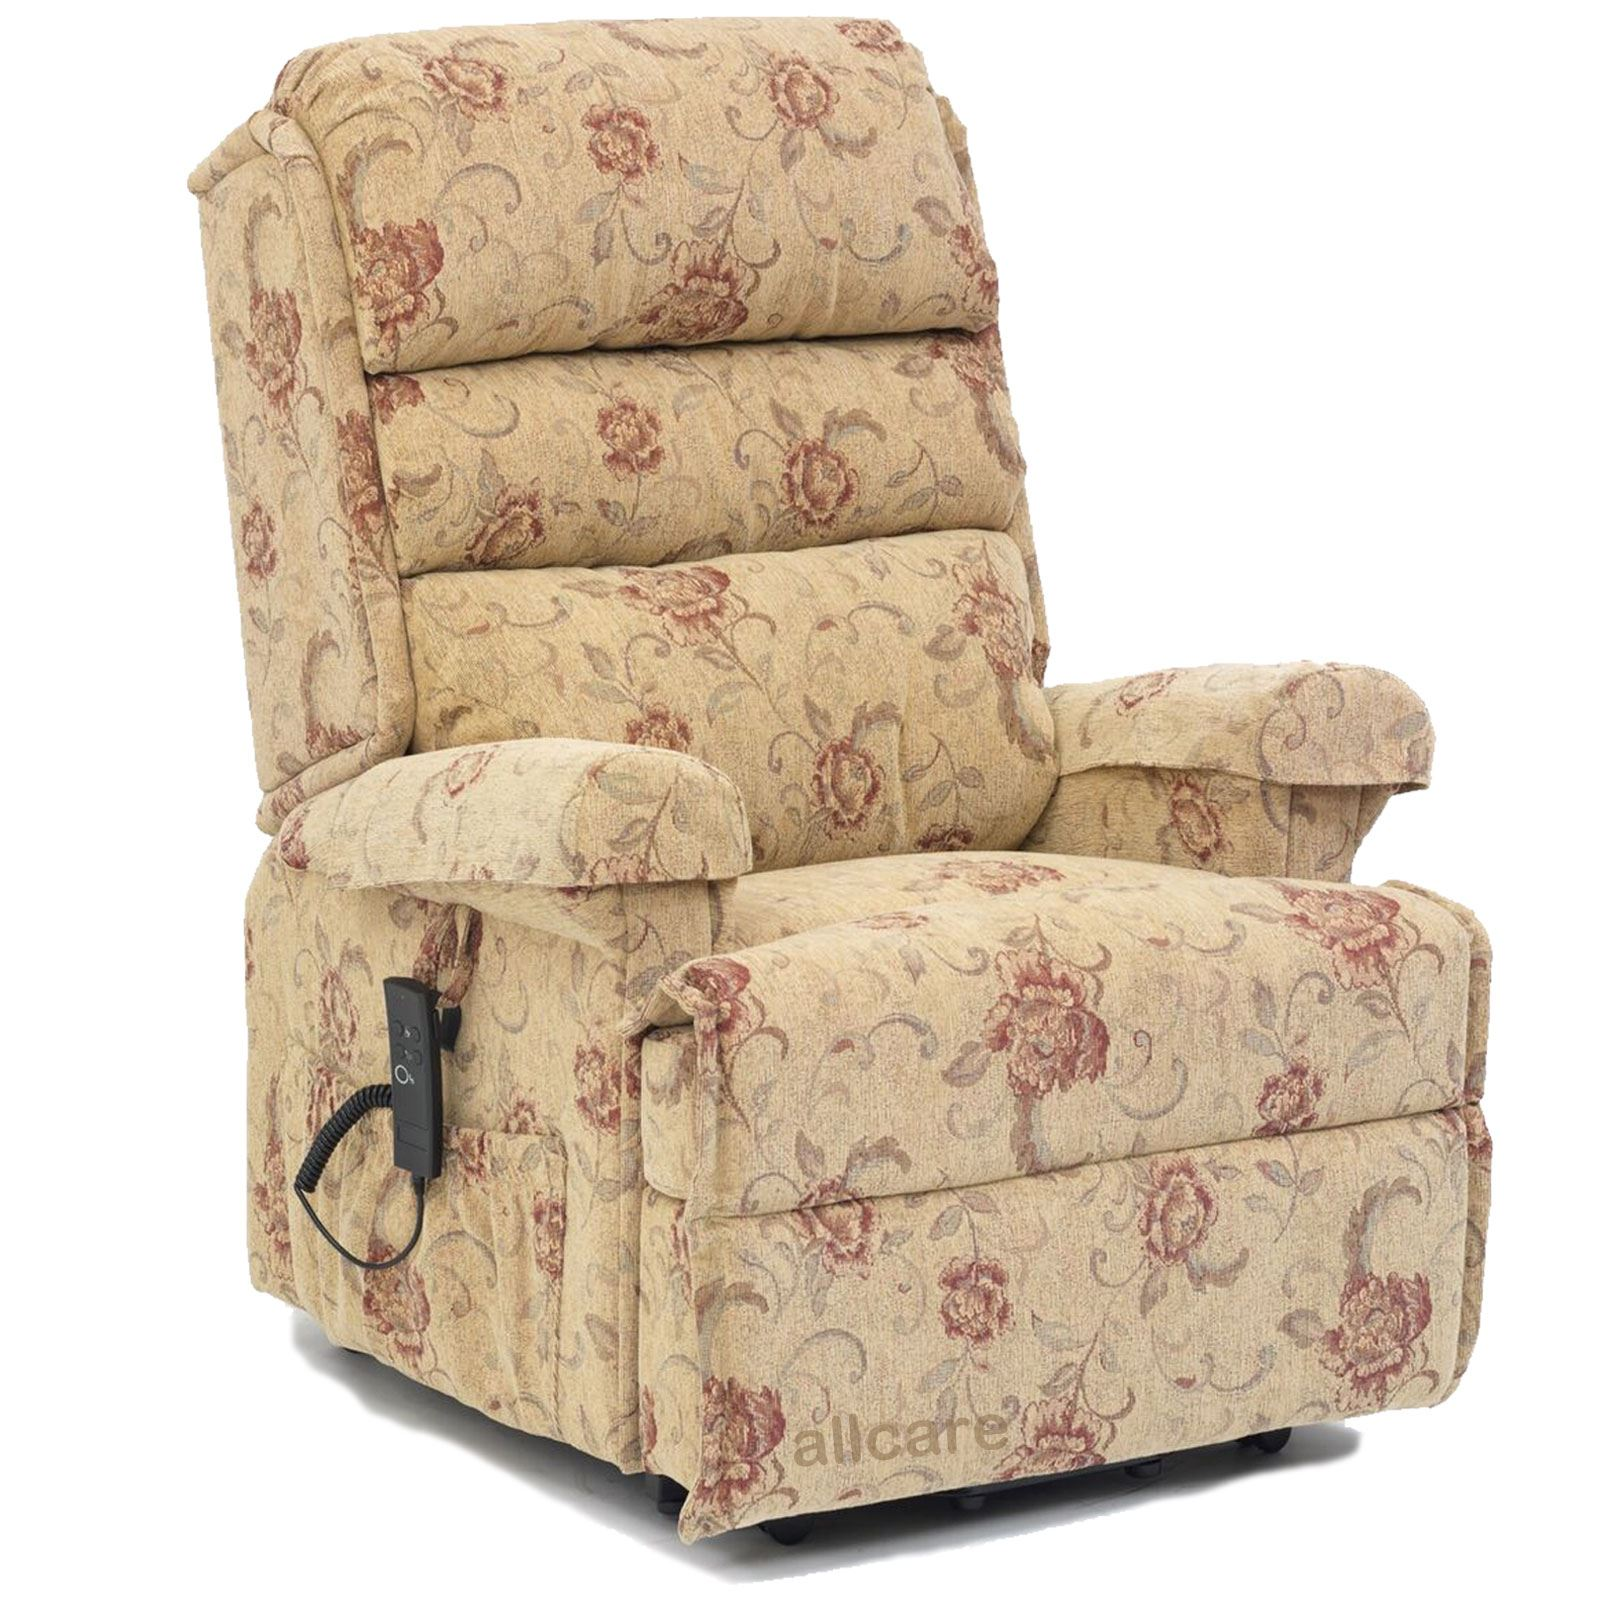 Dual Motor Riser Recliner Chair Restwell Baltimore Fabric Electric Riser Recliner Chair Dual Motor  sc 1 st  Athydirectory & Dual Motor Riser Recliner Chair - Riser And Recliner Armchairs ... islam-shia.org